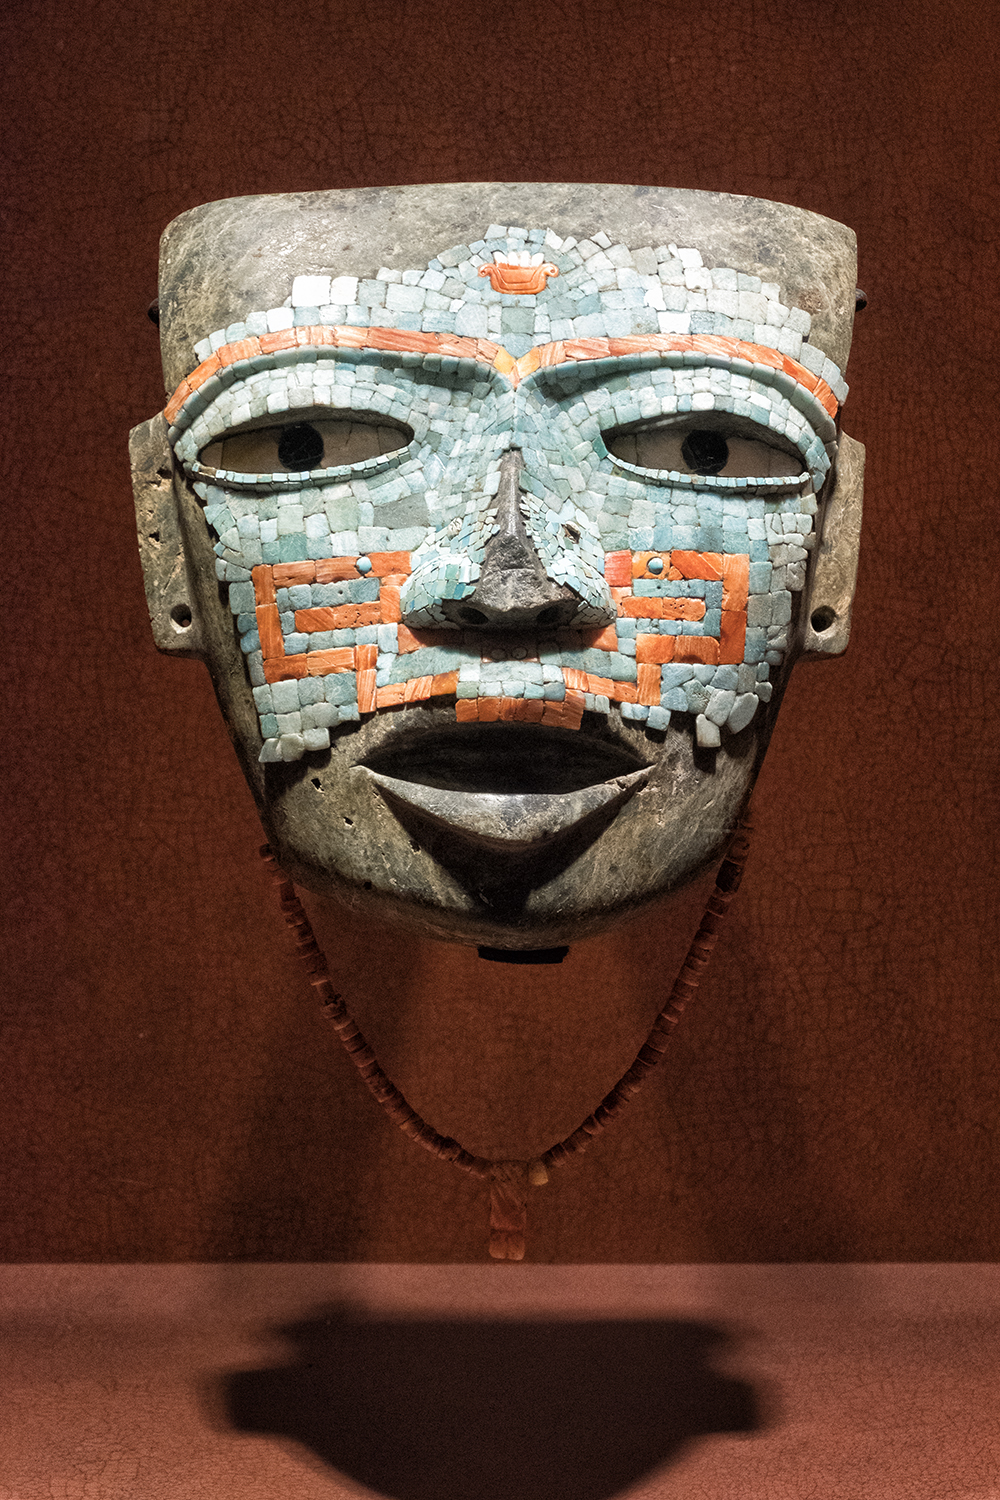 At the Museo Nacional de Anthropologia, Mexico City